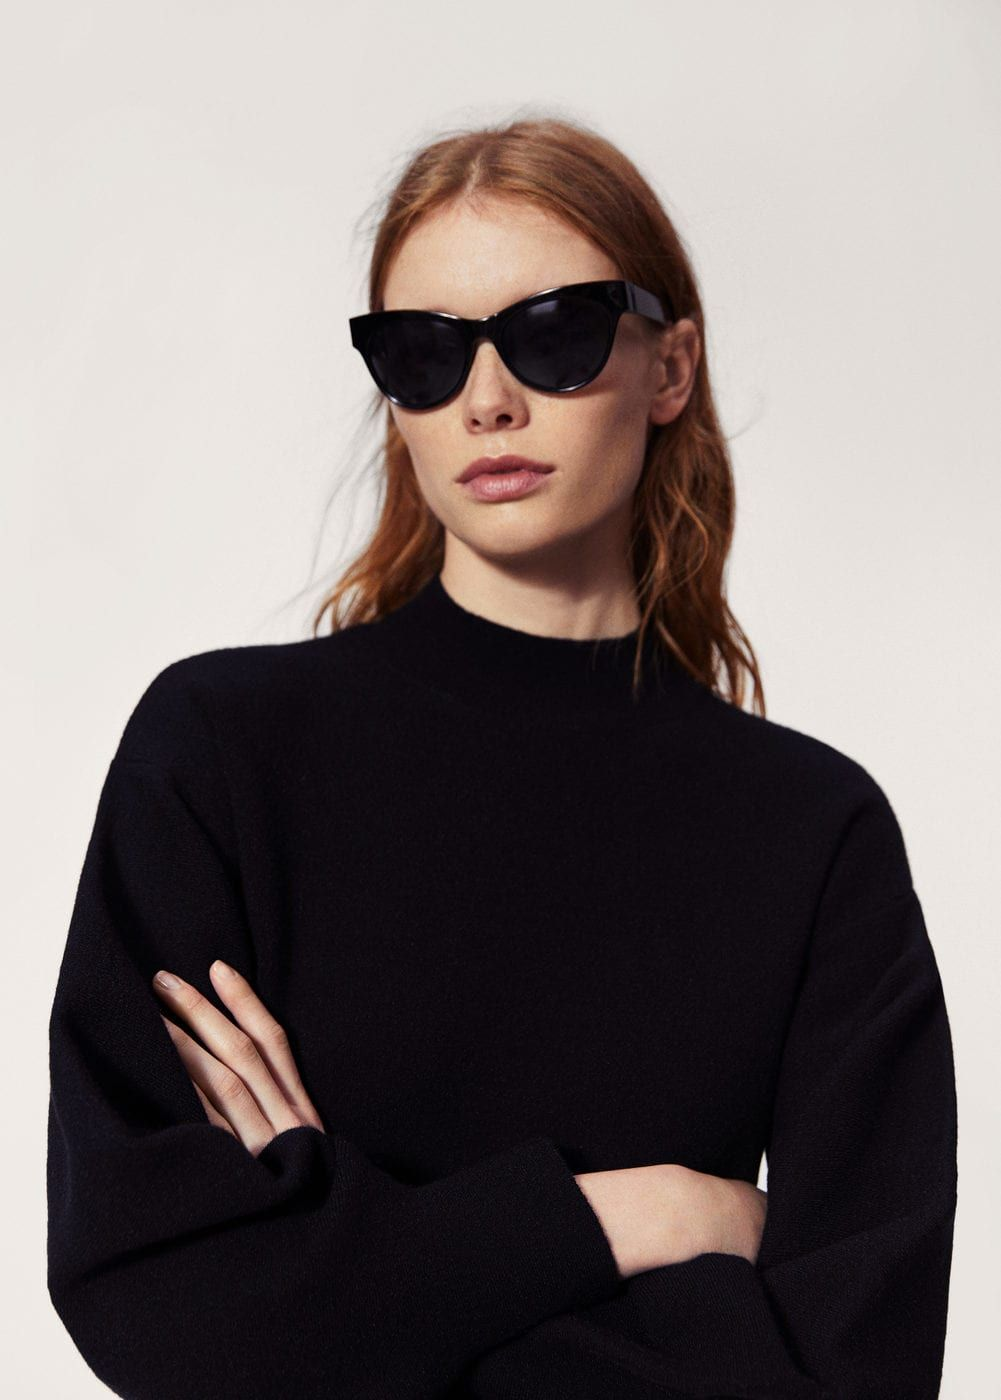 2019Currently Women In Trending Eye Coveting Cat Sunglasses H2WEY9DI